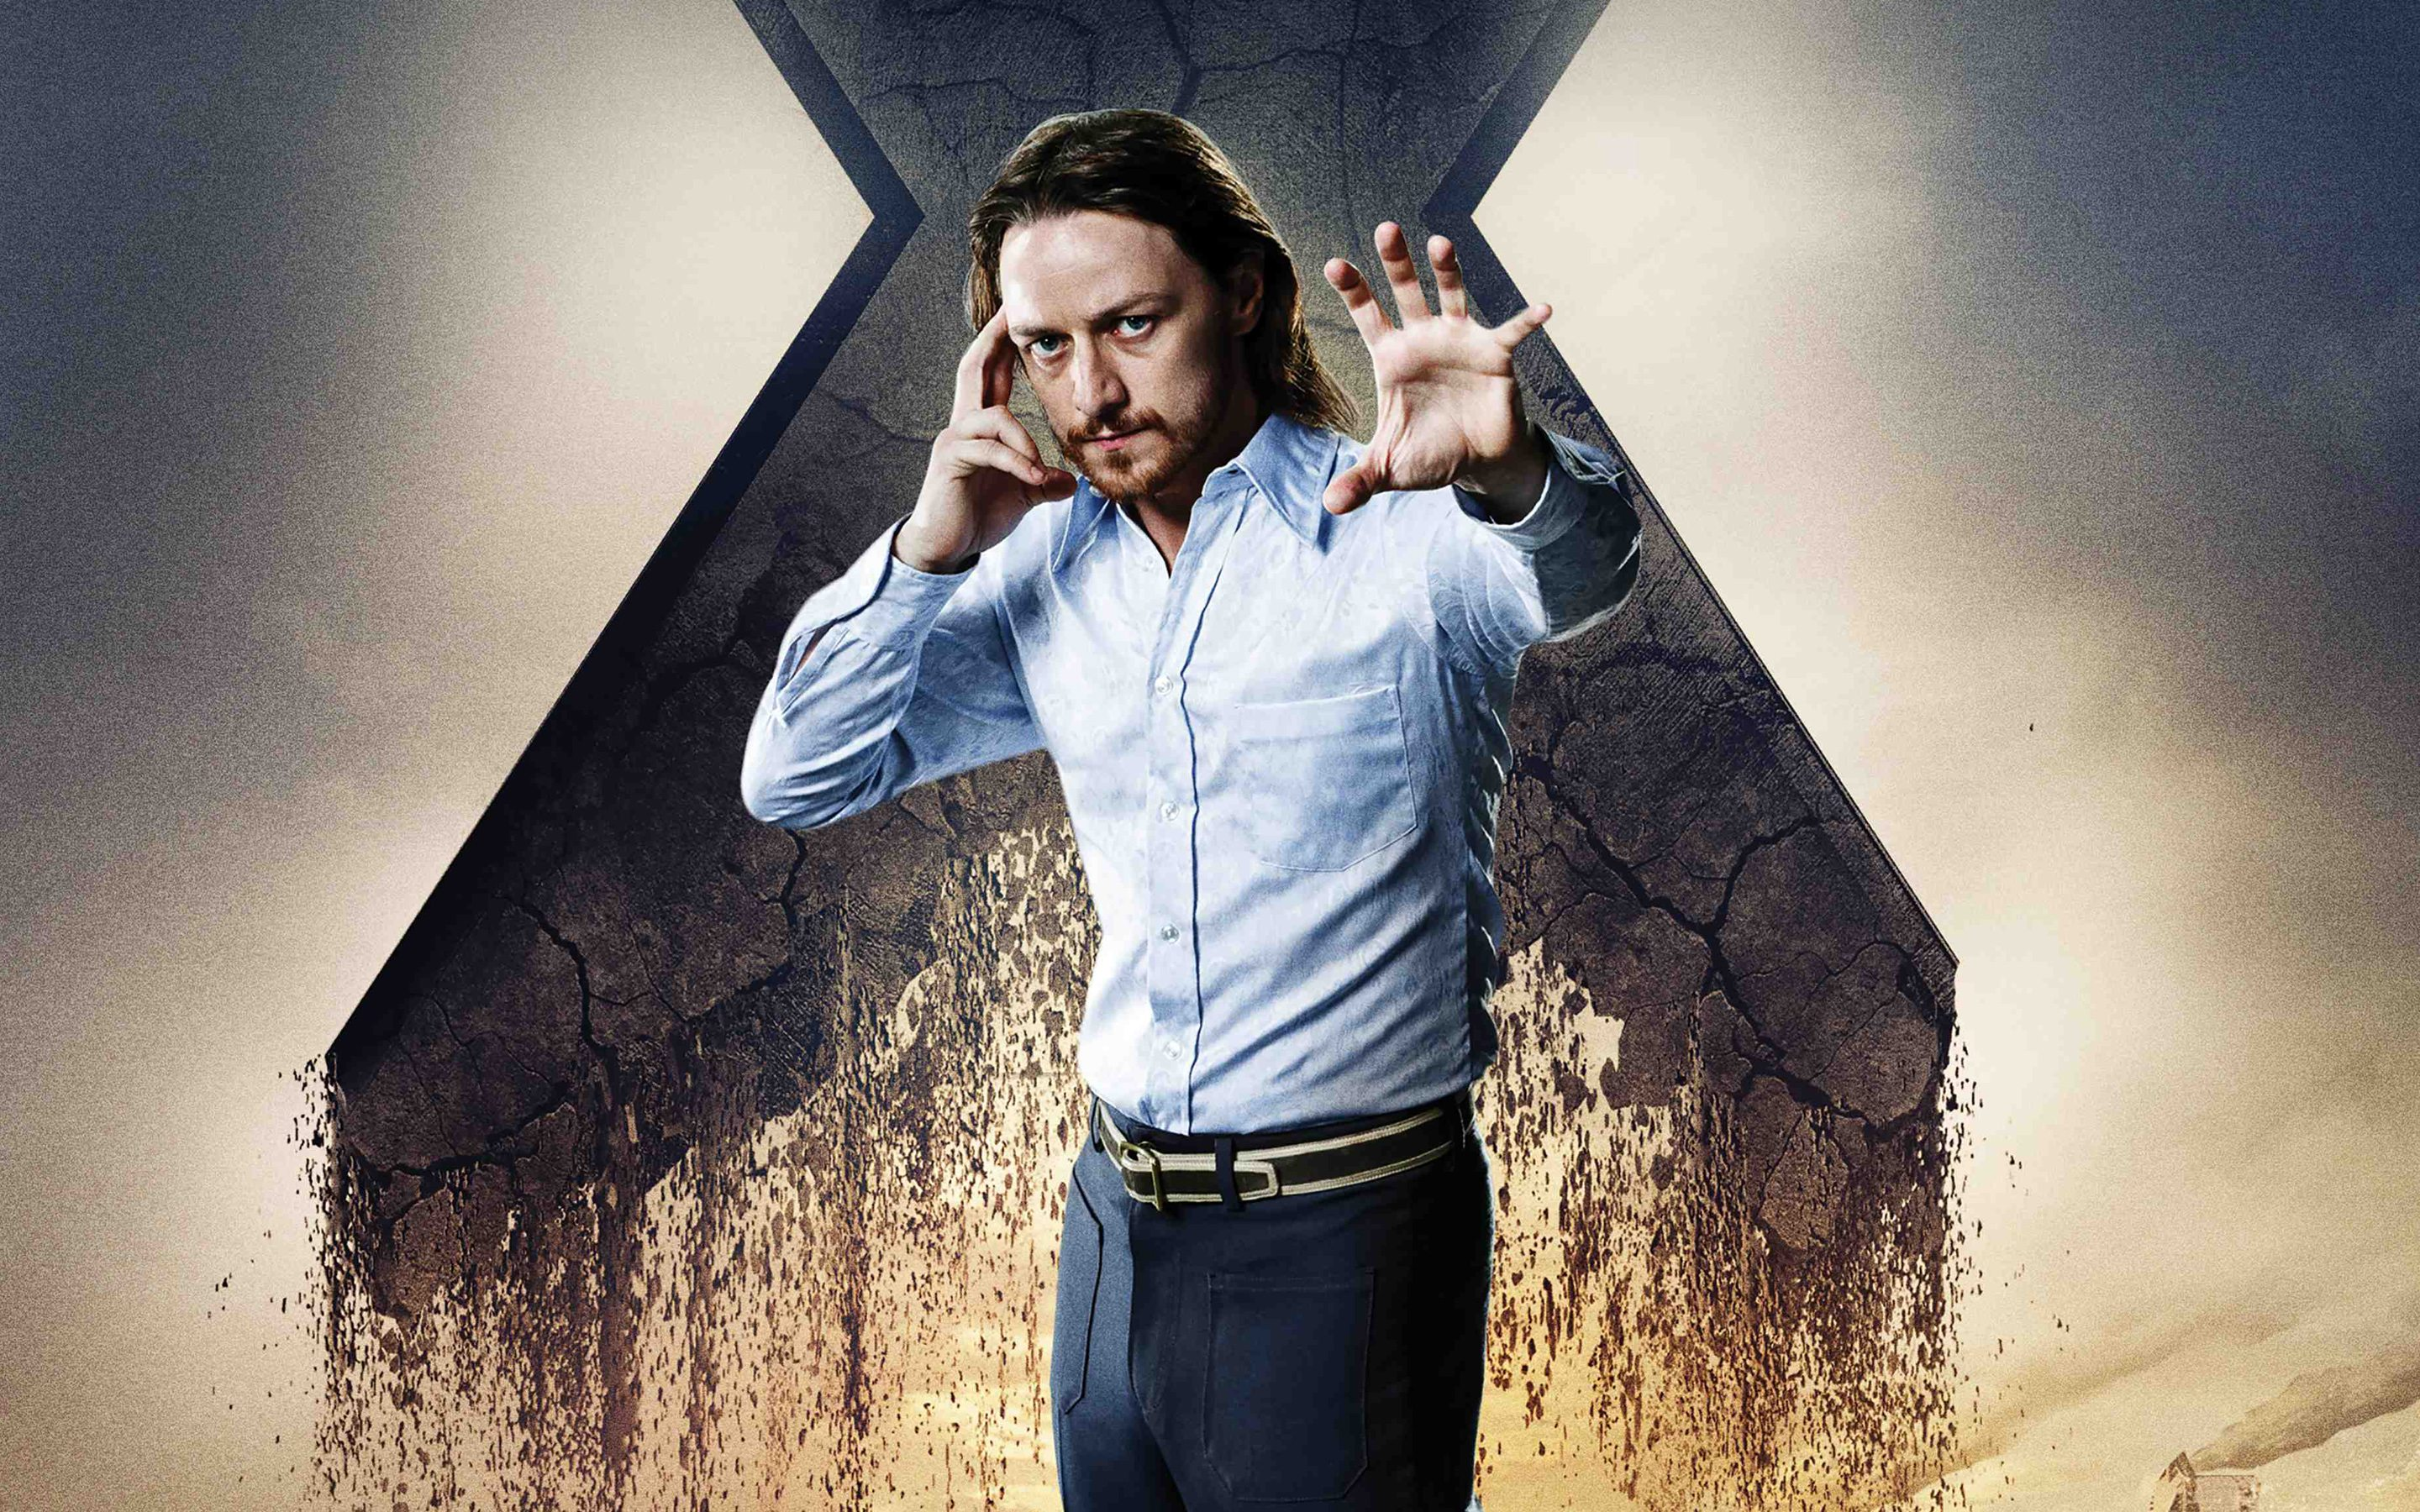 Facts about X-Men